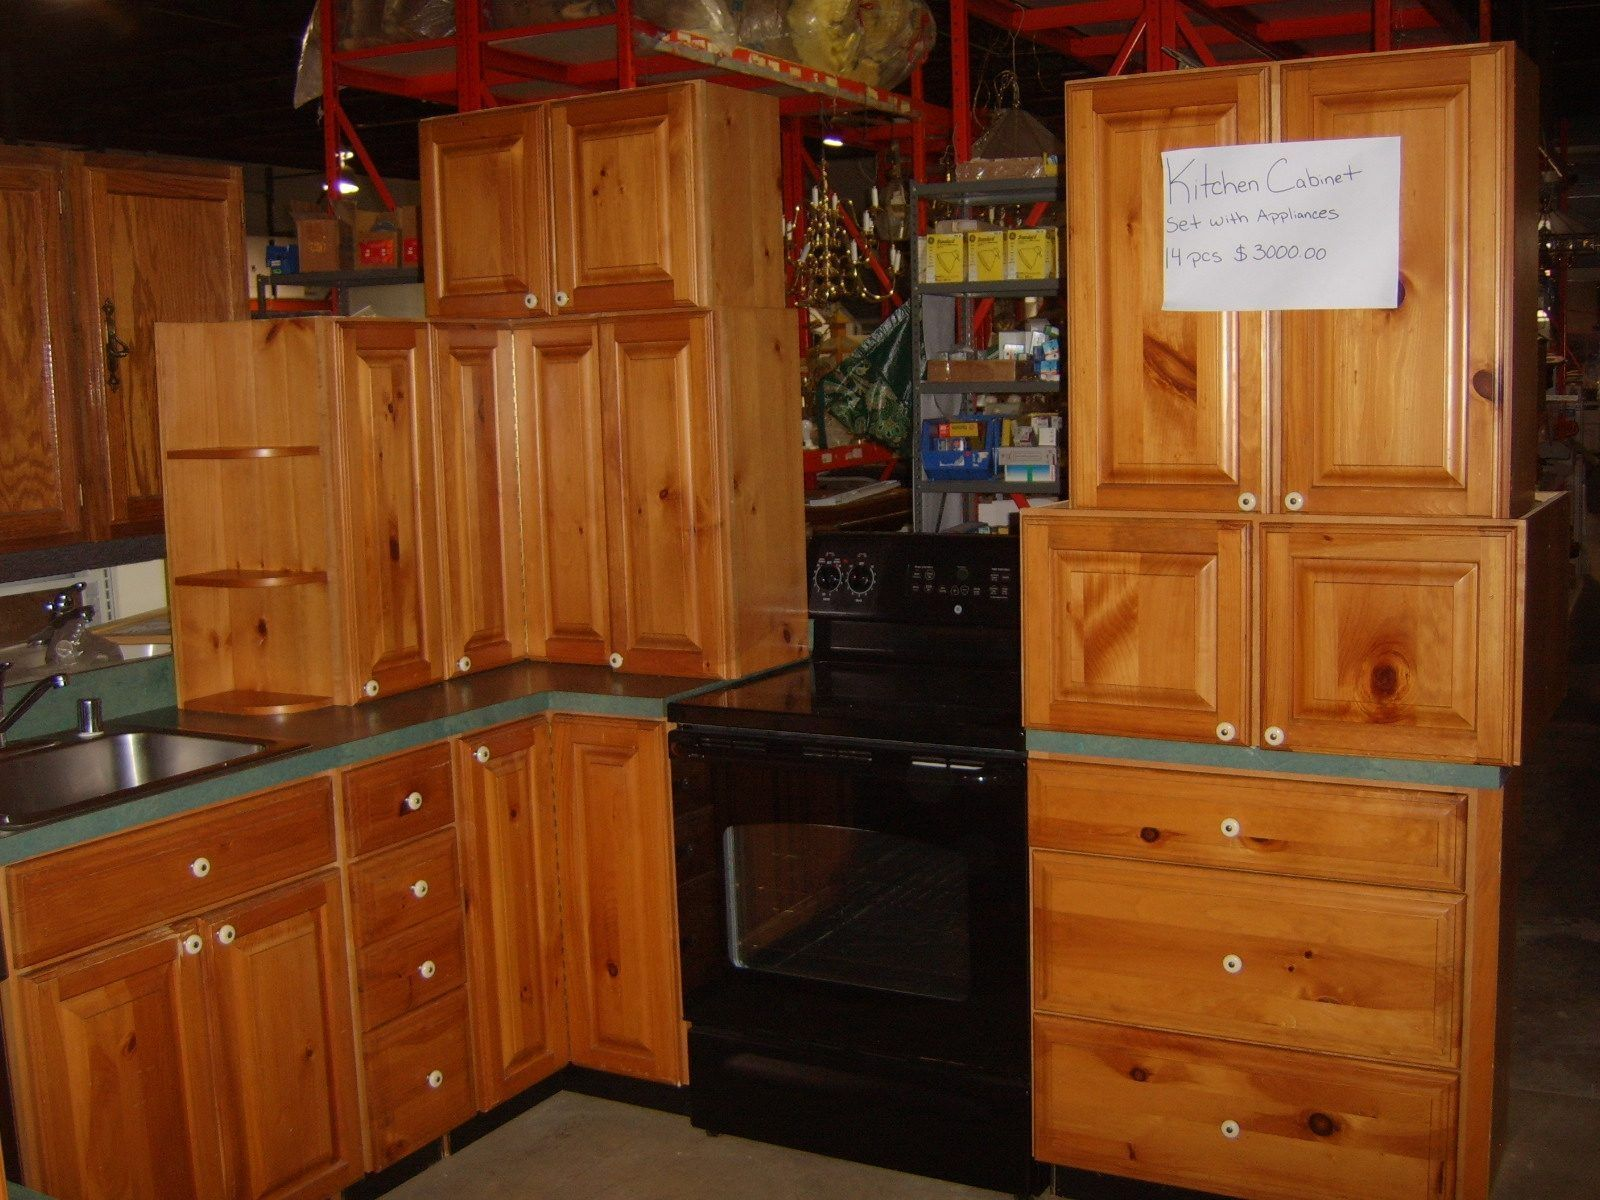 Full Size Of Kitchen Cheap Cabinets Near Me Cabinet Clearance Sale Closeout Bathroom Local Us Kitchen Cabinets For Sale Used Kitchen Cabinets Cabinets For Sale